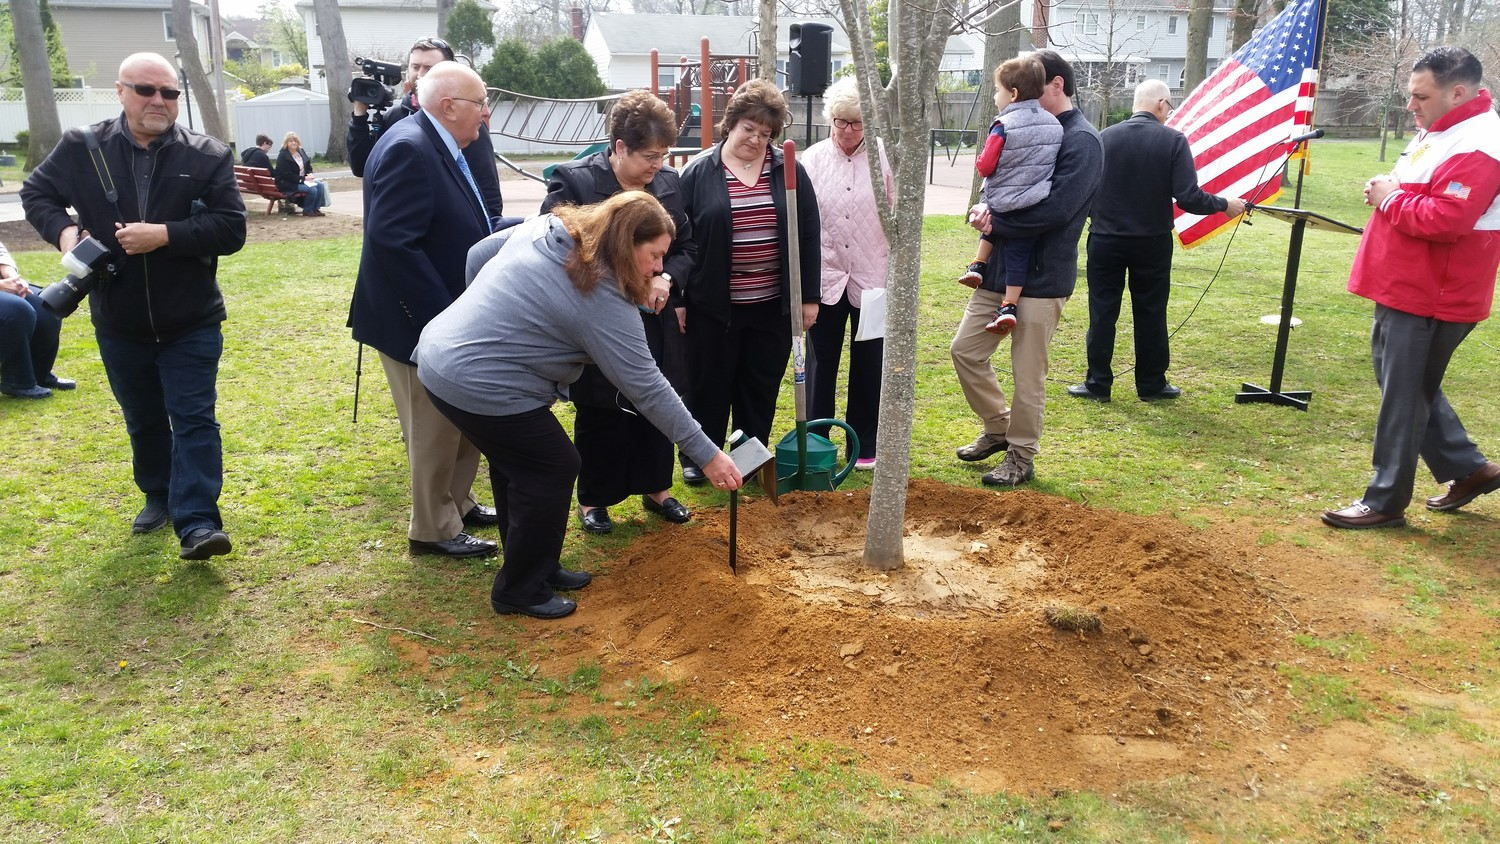 Family members of Malvernite Peter Zullo, village officials and local politicians gathered as Tree and Beautification Committee Chairwoman JoAnn O'Brien unveiled his plaque.